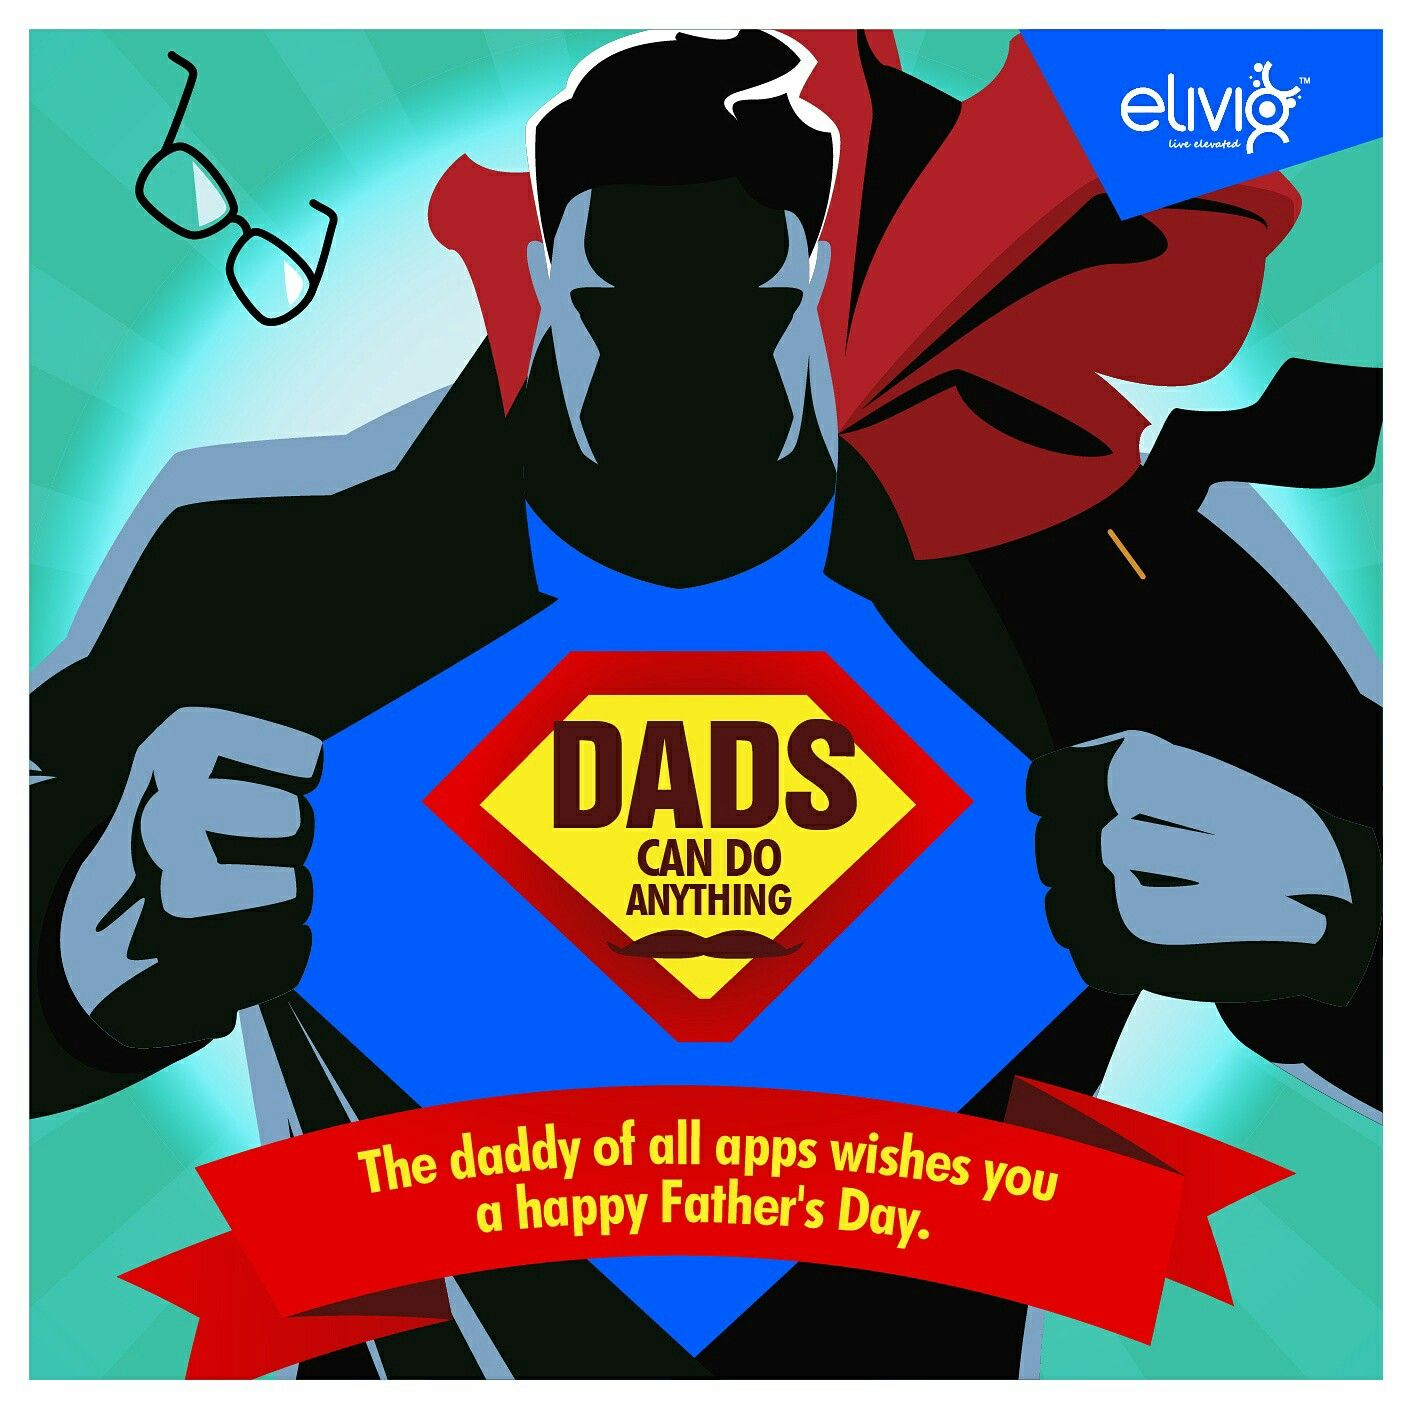 fathersday happyfathersday health finance reminders